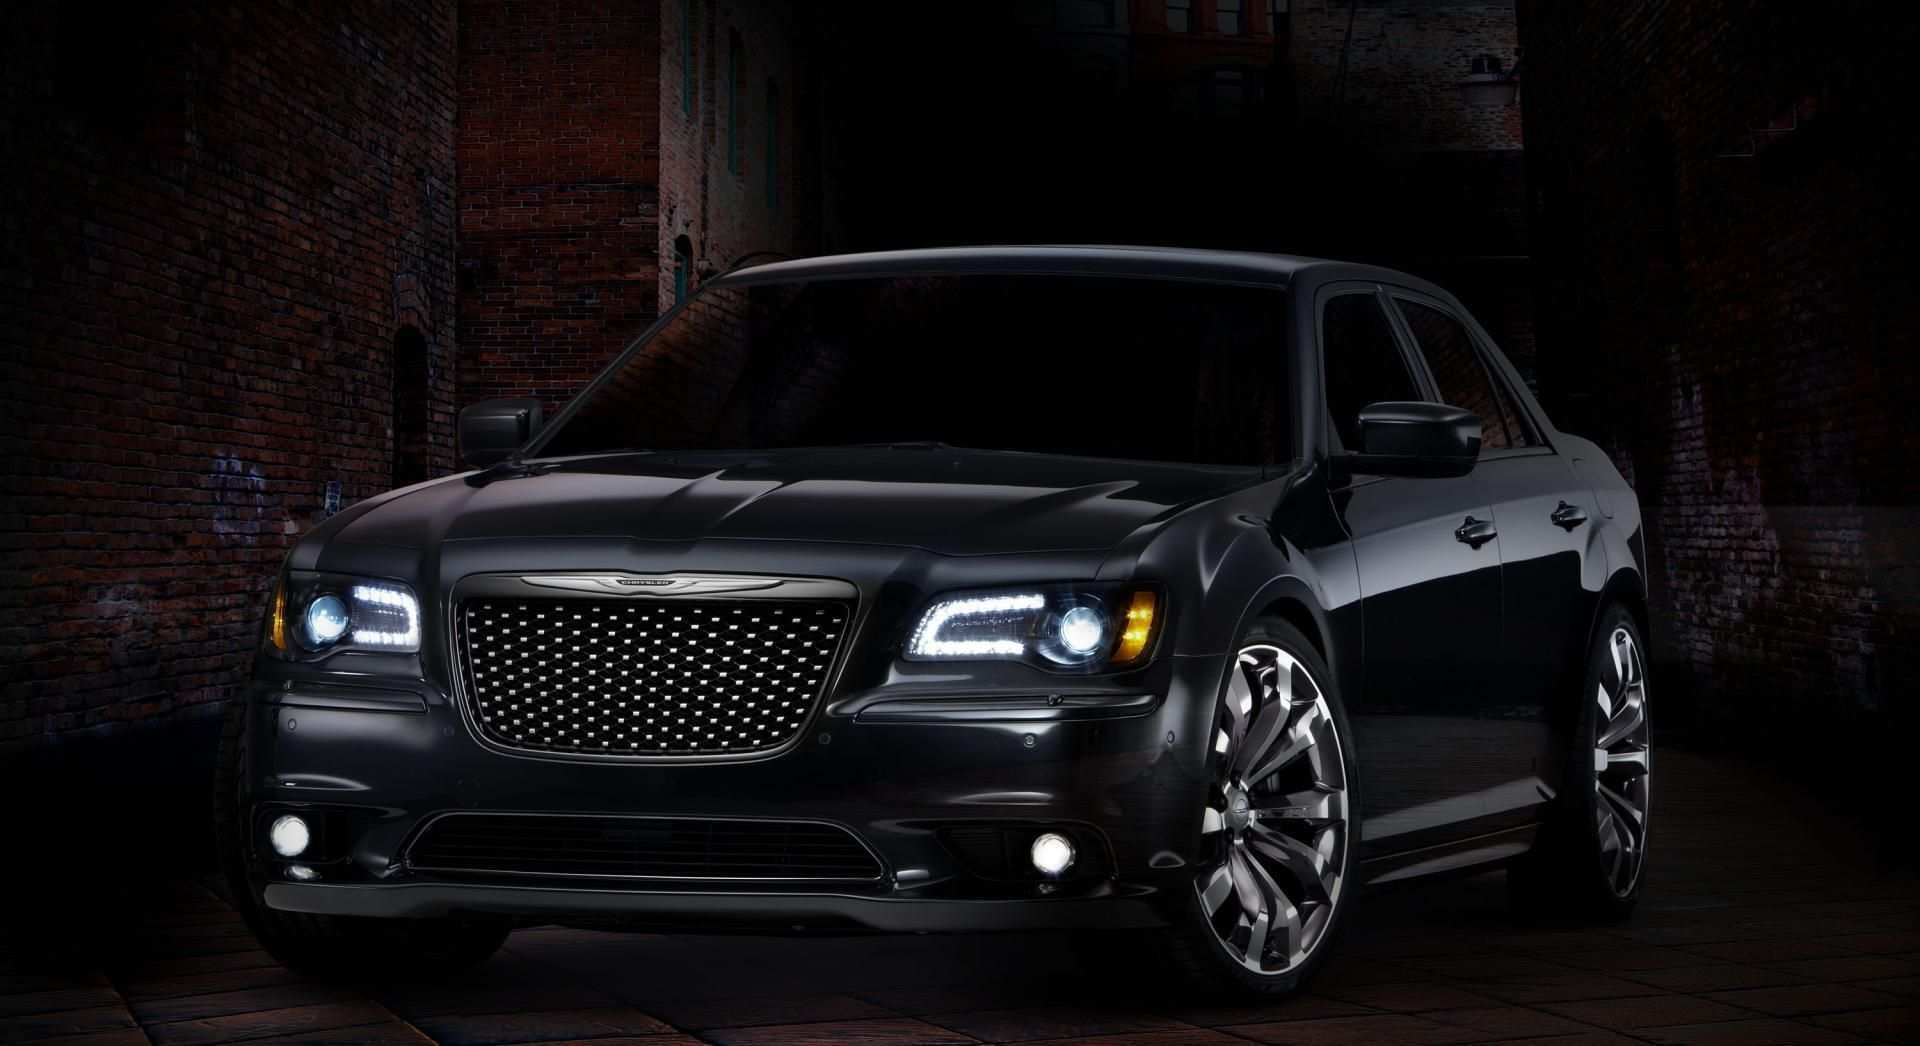 28 Concept of 2020 Chrysler 300 Redesign History with 2020 Chrysler 300 Redesign